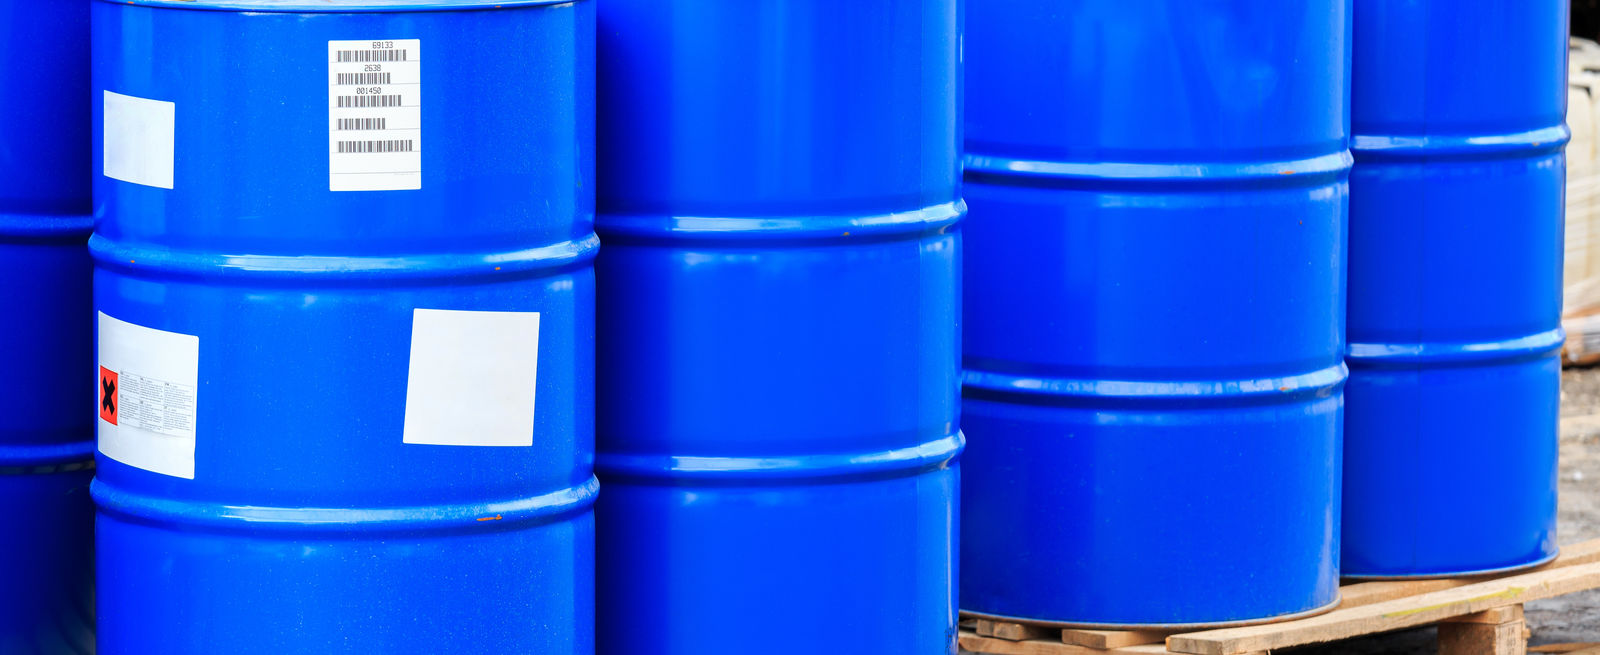 chemical barrels loaded on pallets in warehouse